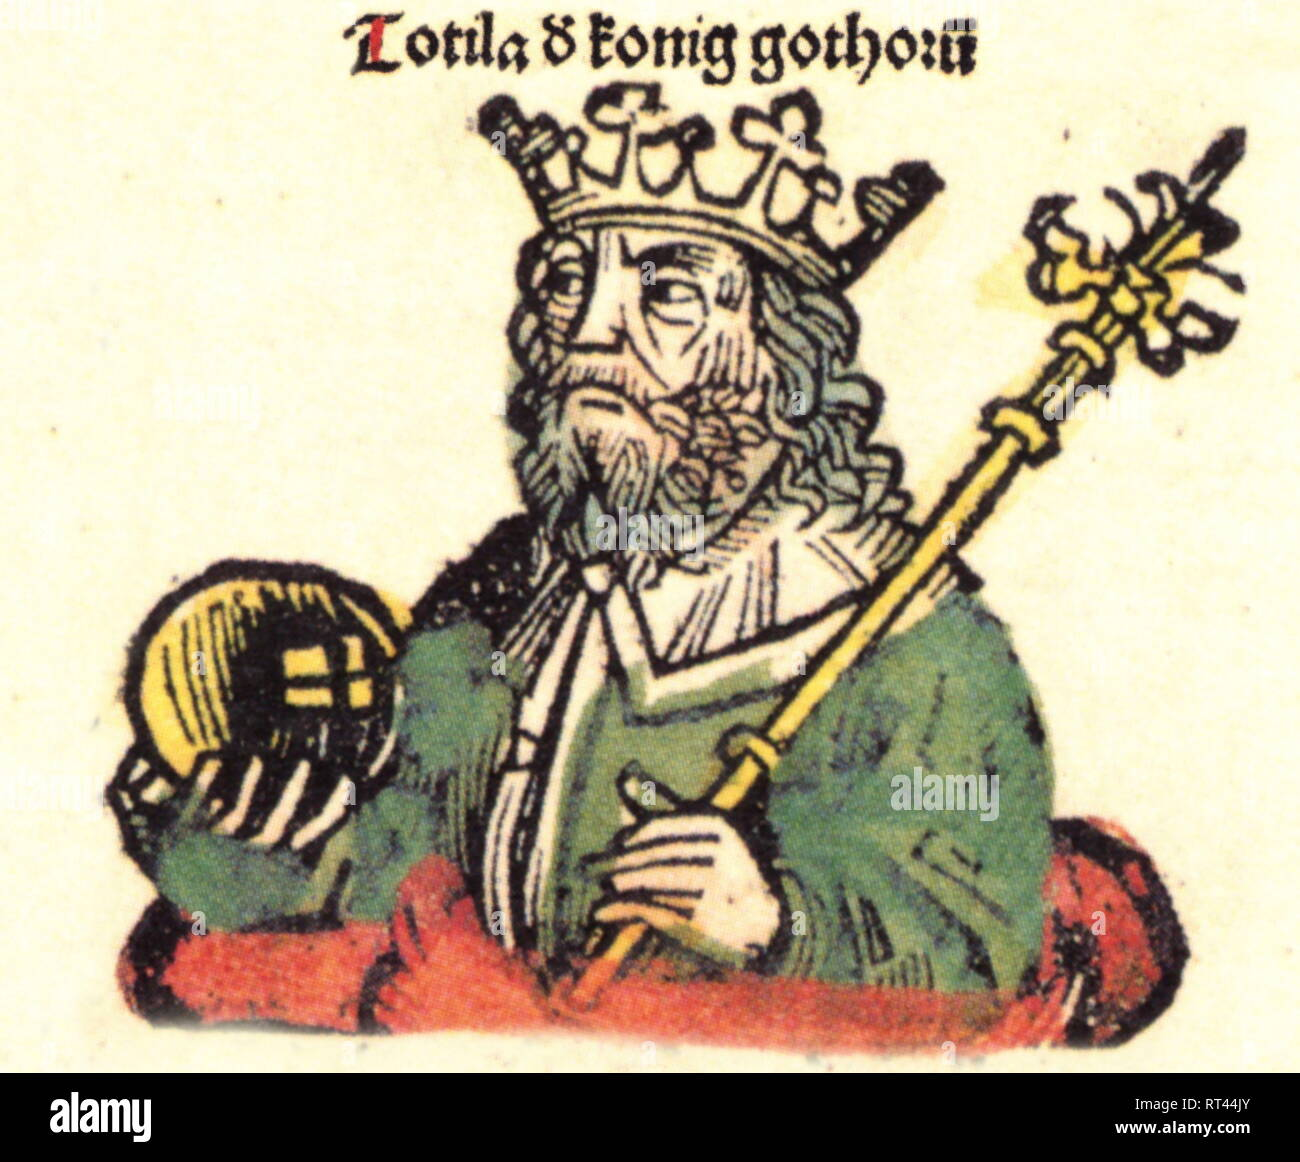 Totila, + 1.7.552, King of the Ostrogoth 542 - 552, half-length, woodcut by Michael Wolgemut or Wilhelm Pleydenwurff to the chronicle of Hartmann Schedel, Nuremberg, 1493, Artist's Copyright has not to be cleared - Stock Image